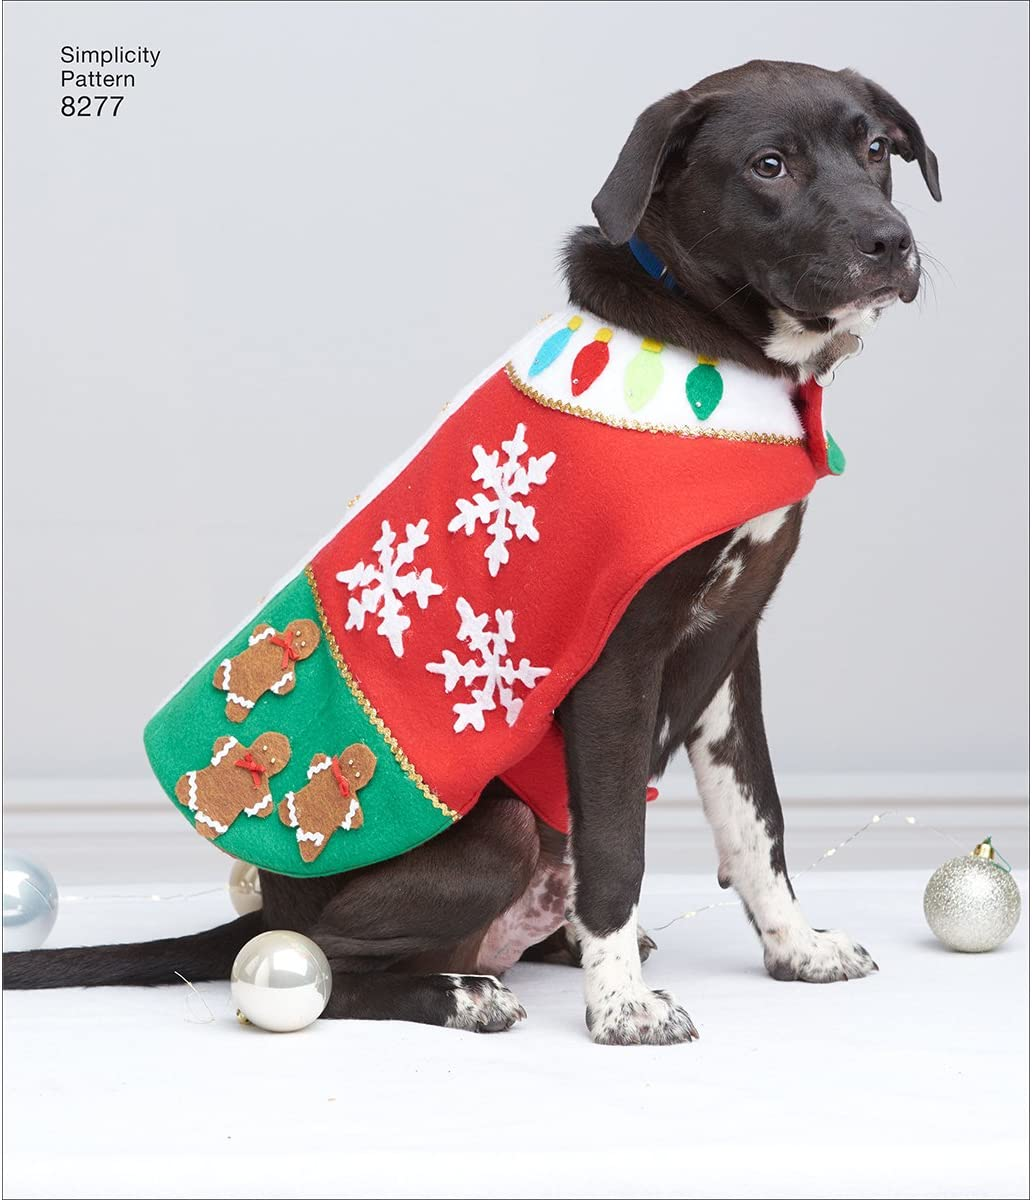 SIMPLICITY Sewing Pattern S8967 Dog Coats Paper White various